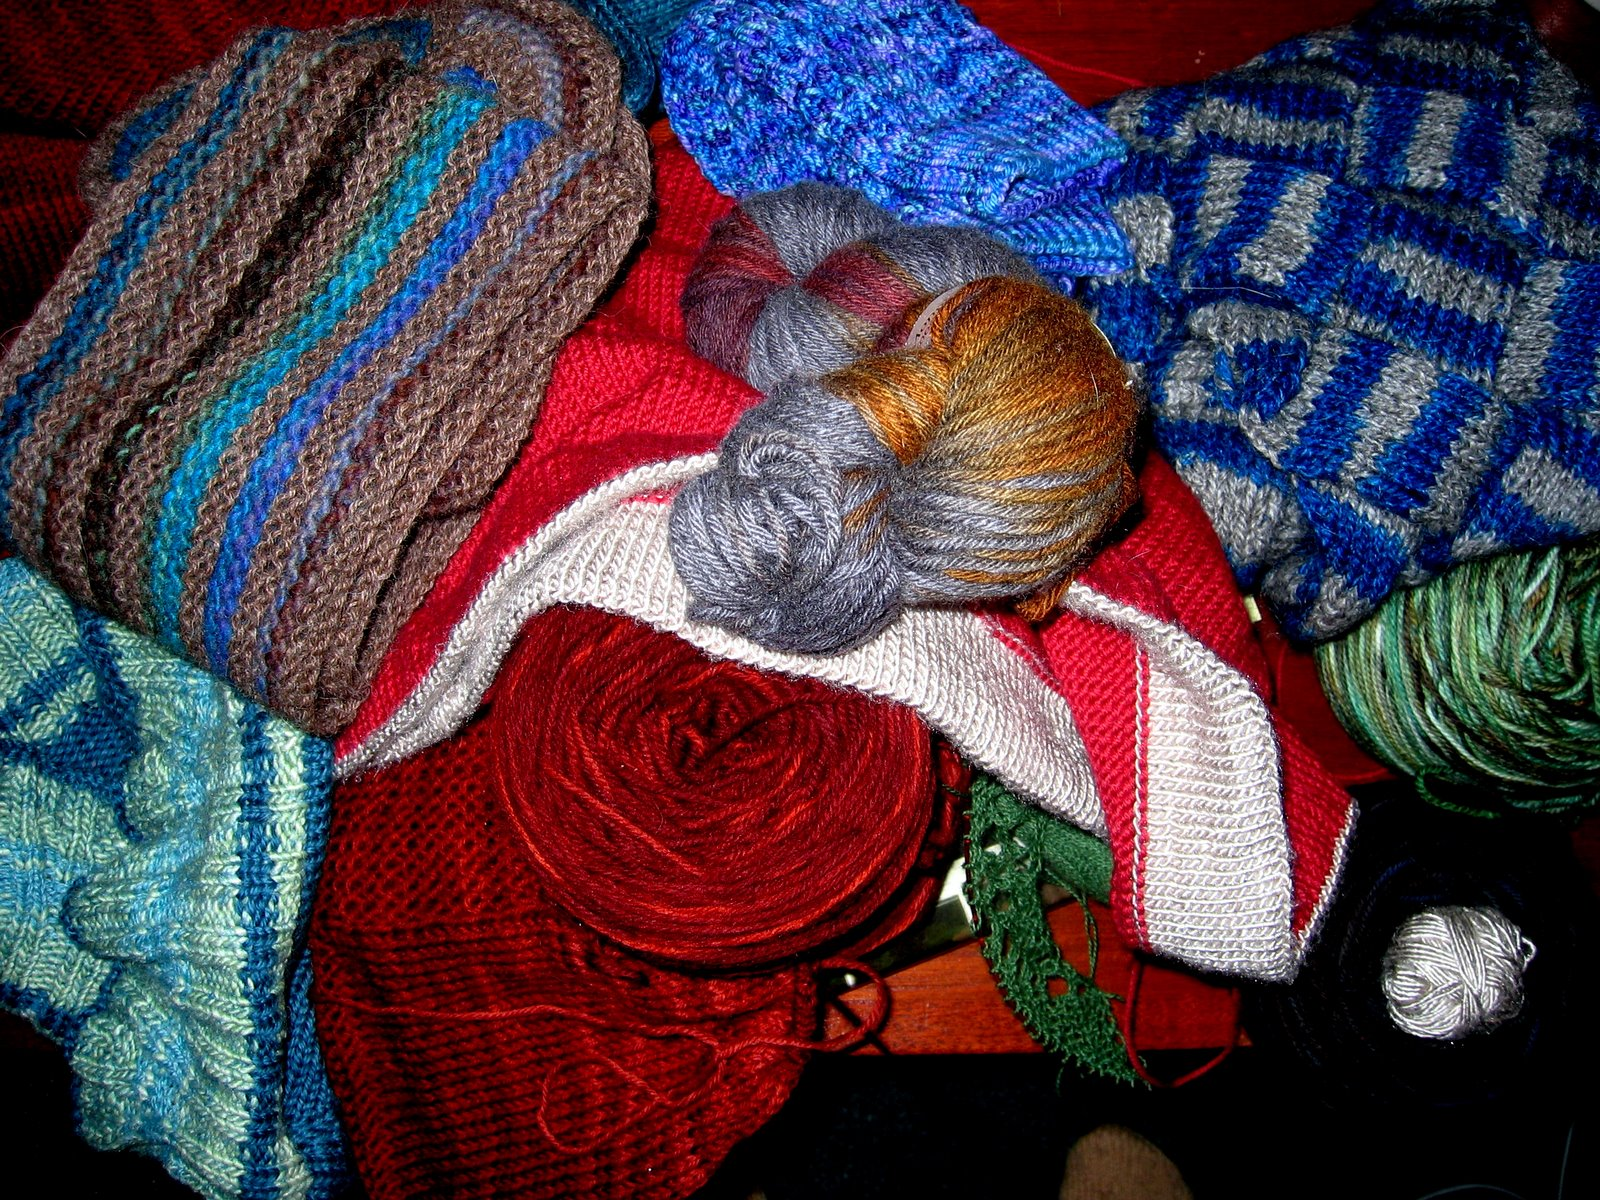 [Christmas+2007+knitting+in+process]